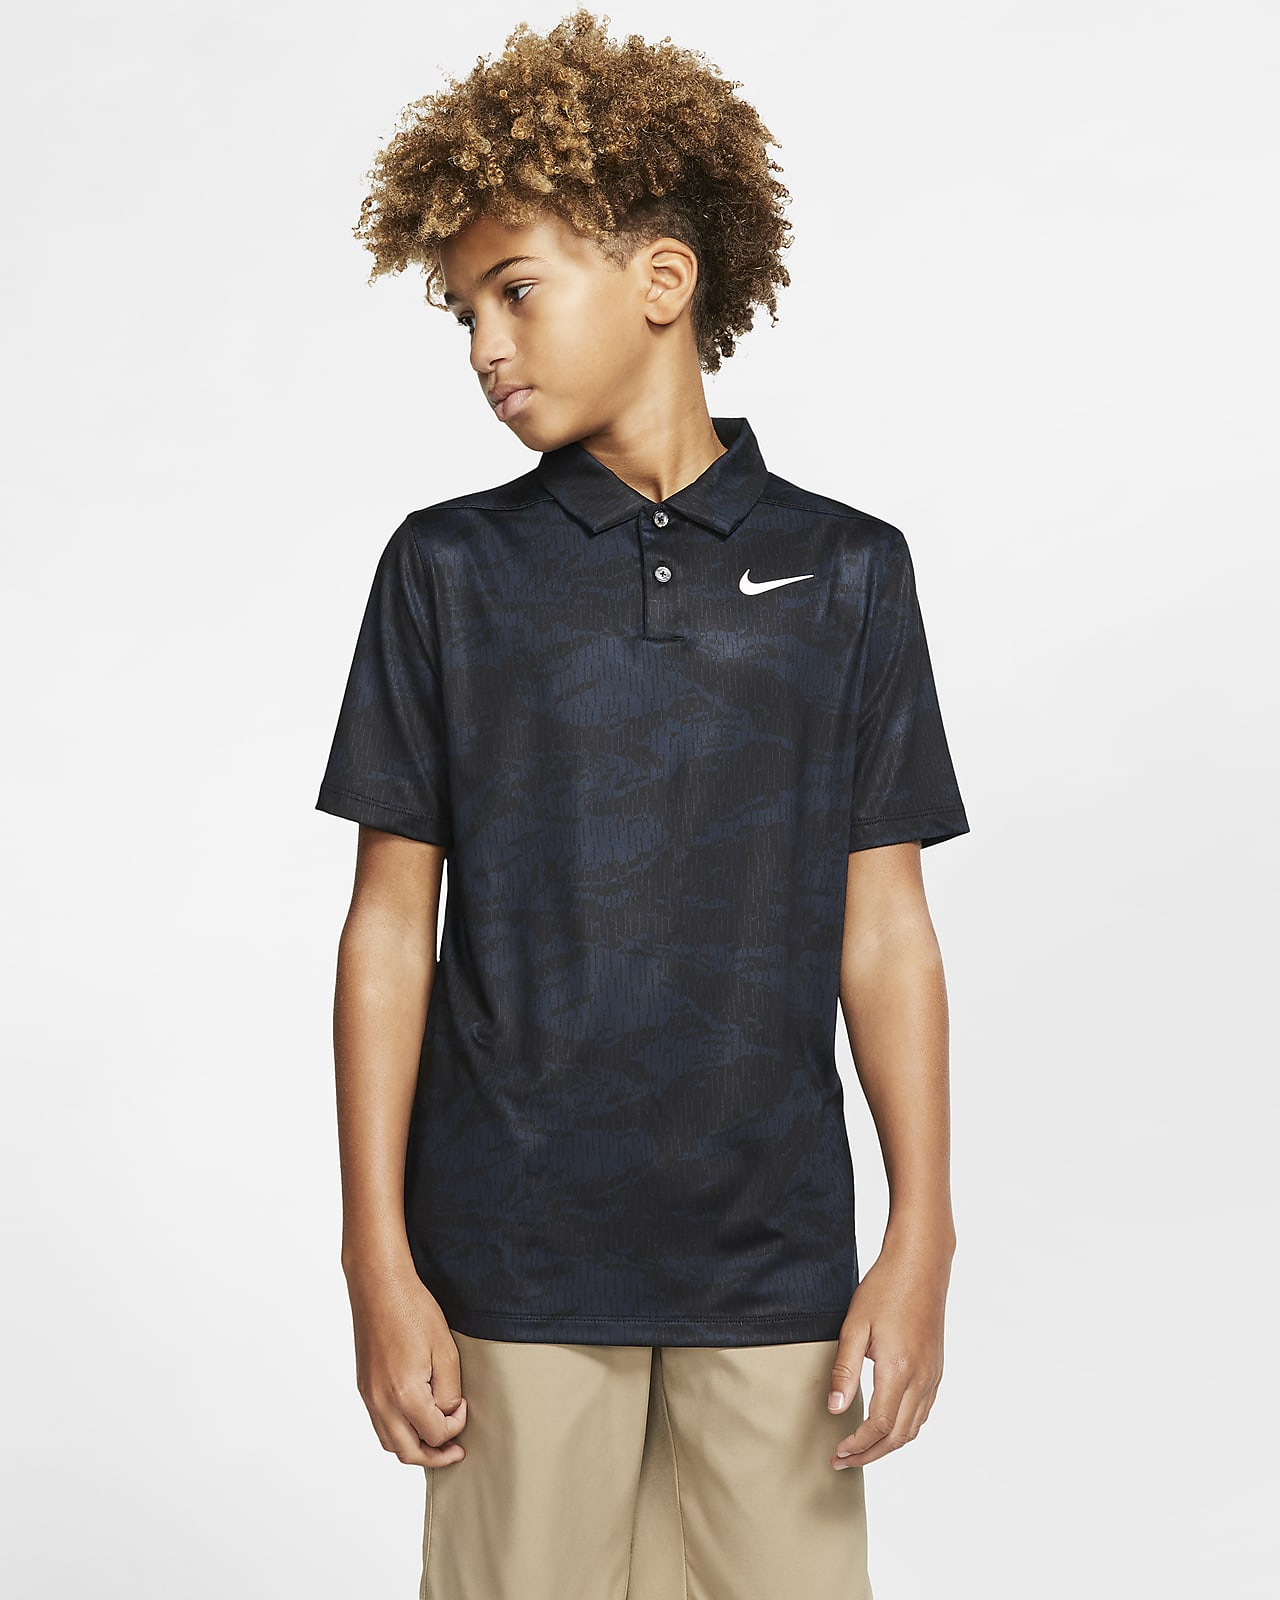 Nike Dri-FIT Boys' Printed Golf Polo